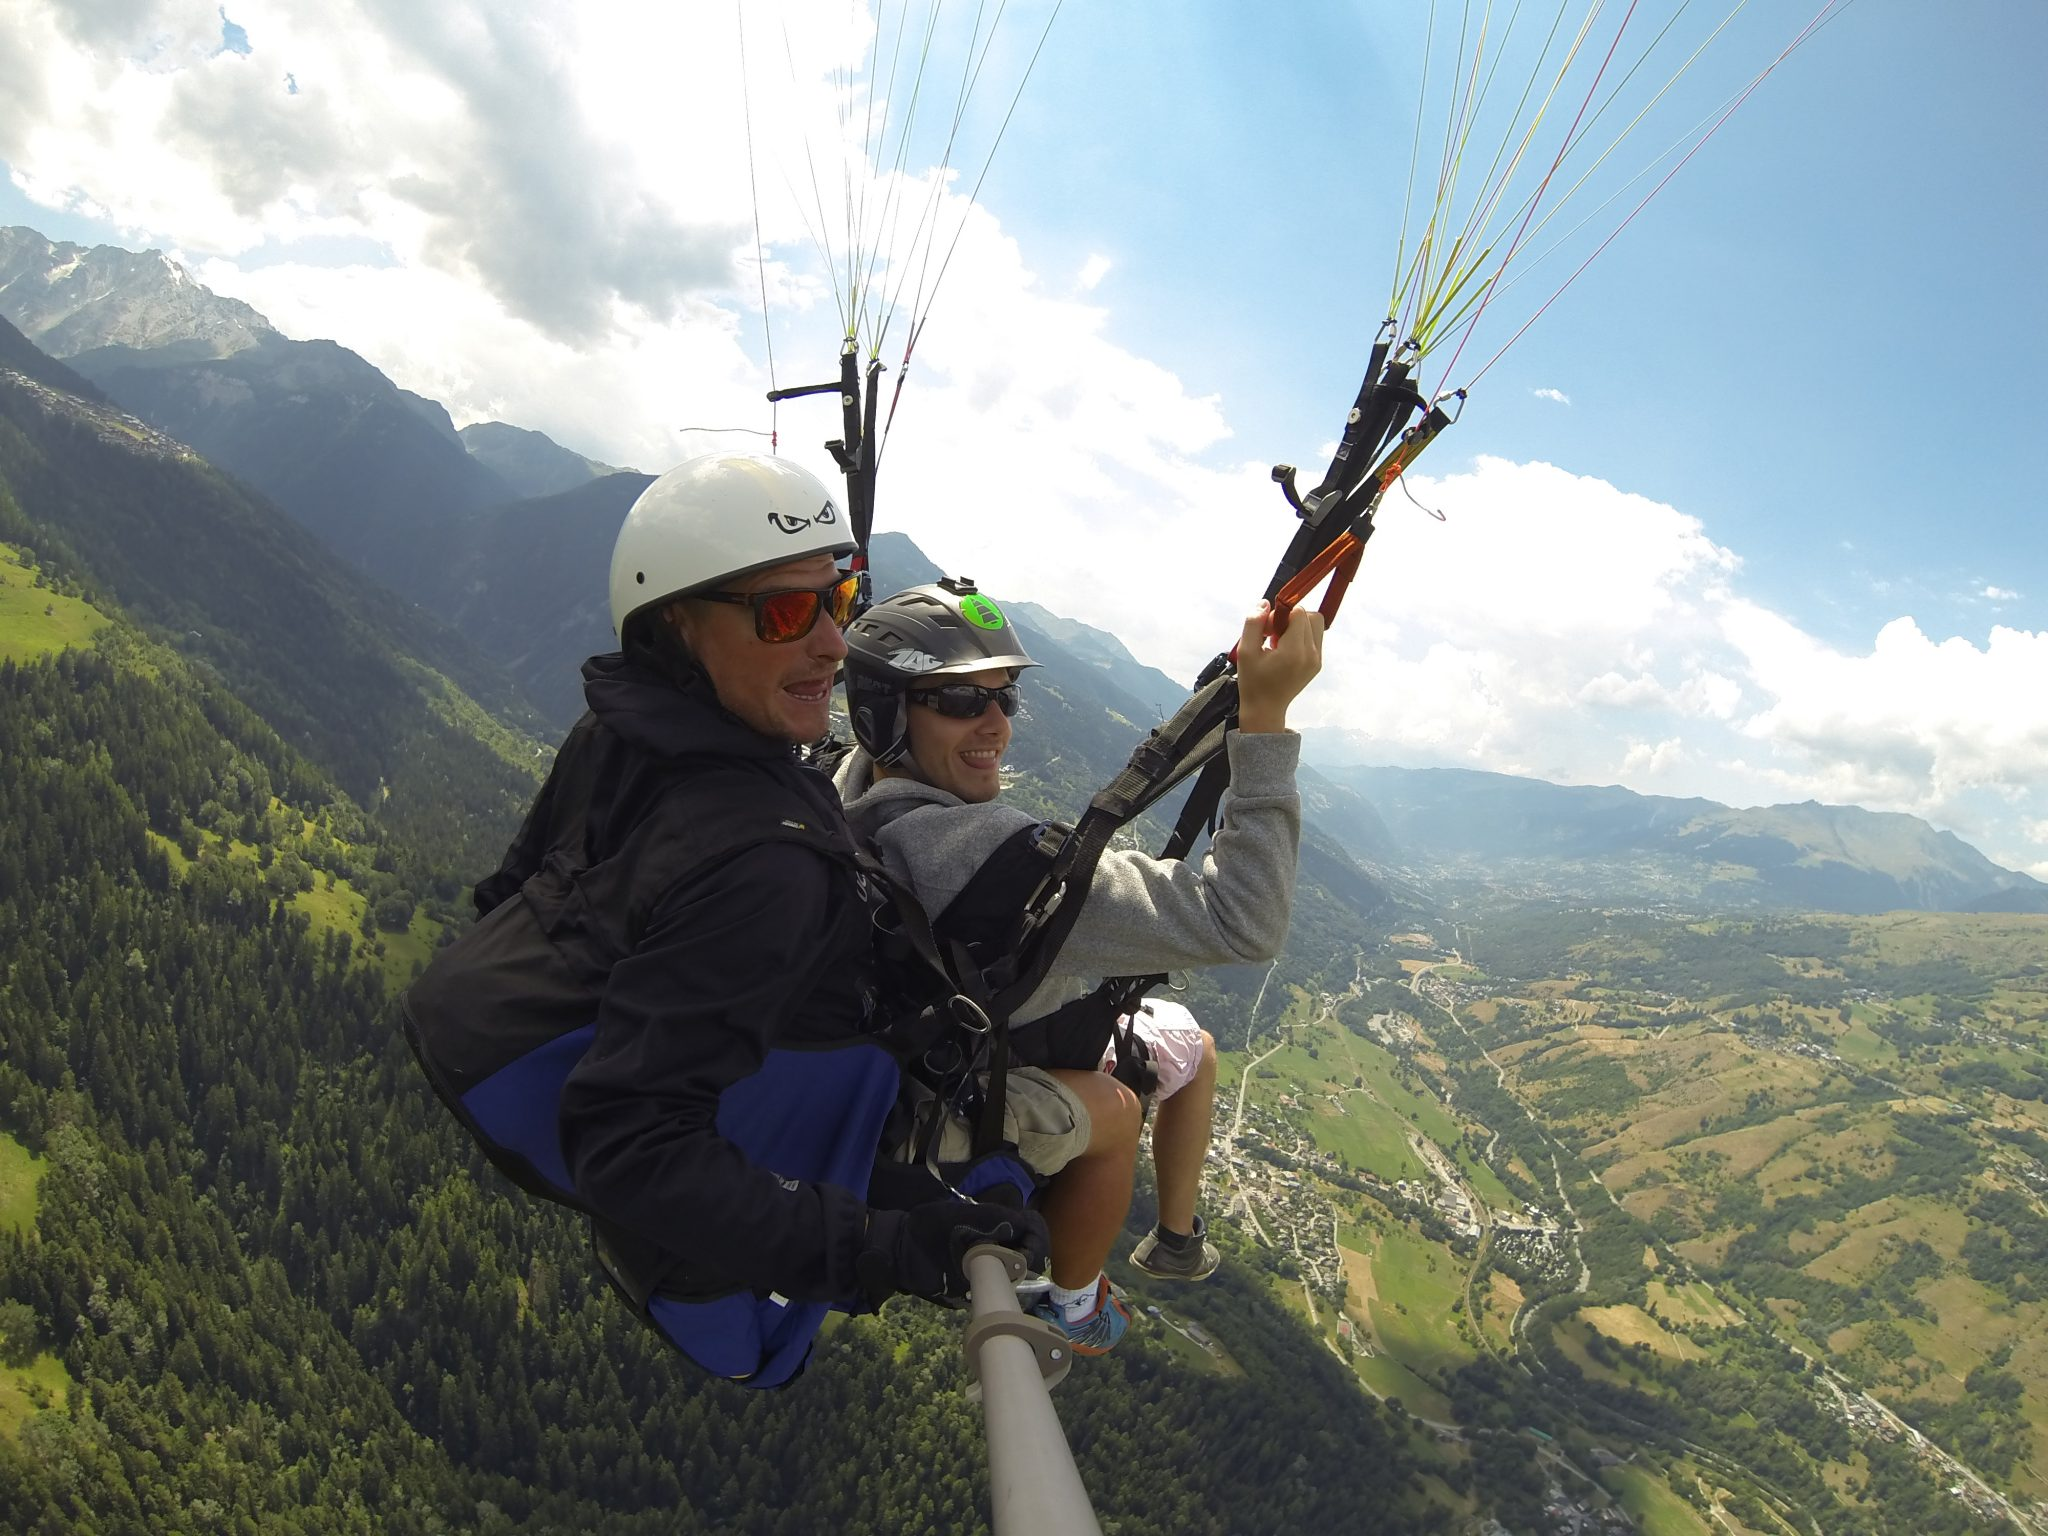 Unbelievable July month for paragliding. 12